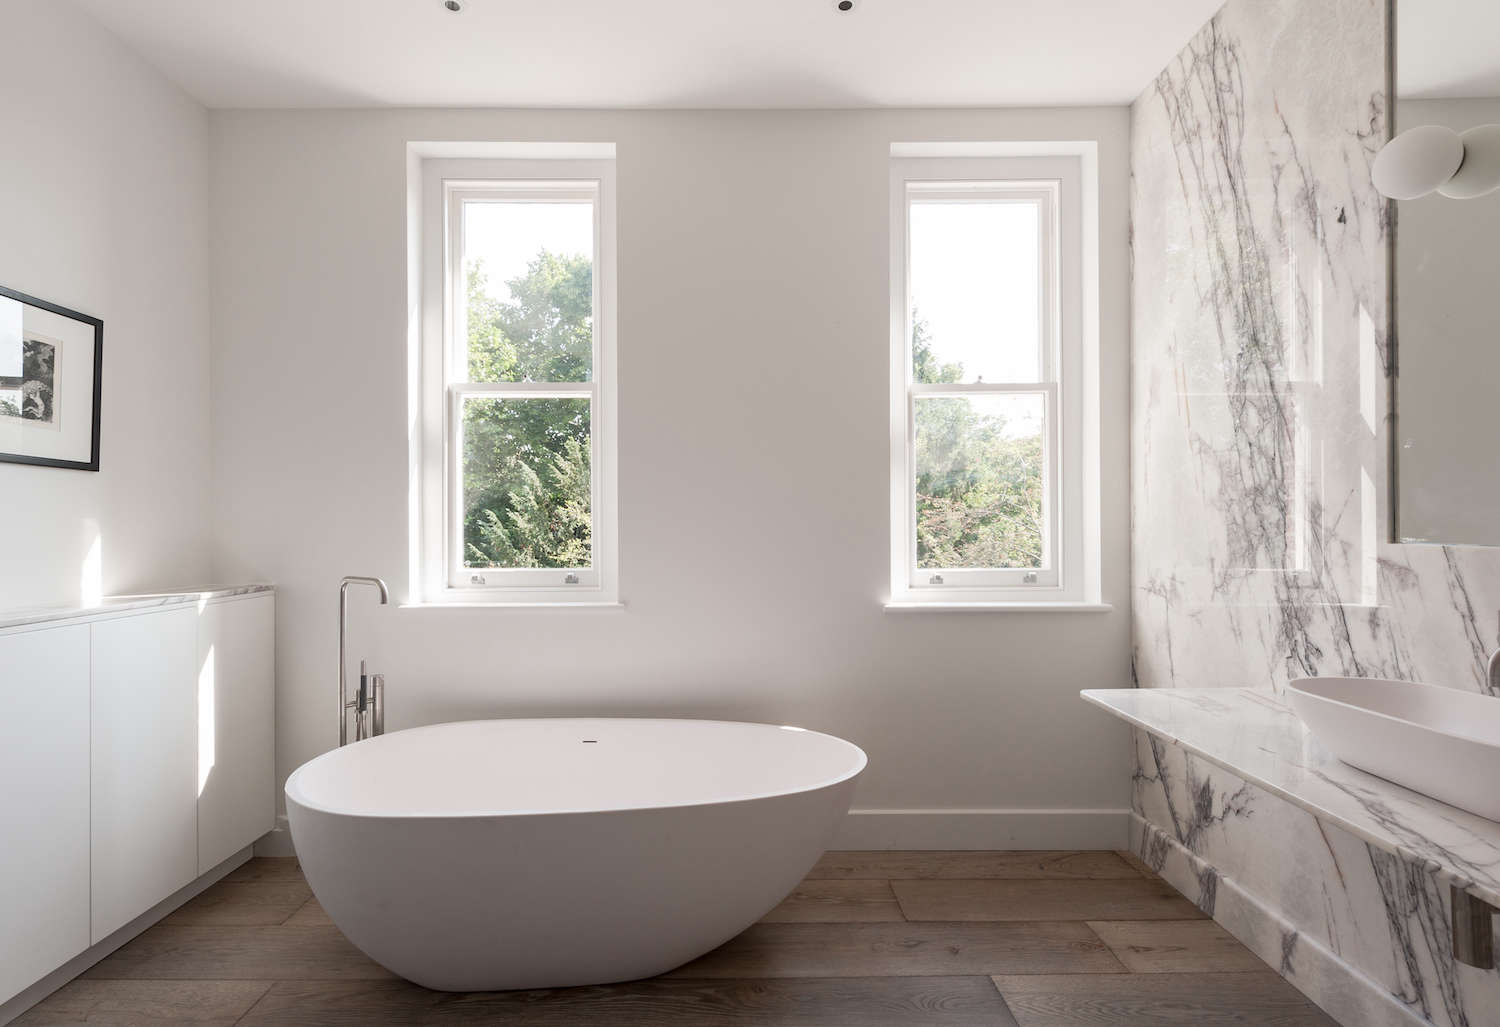 Delightful Modern White Bathroom In UK With Freestanding Bathtub And Marble Slab Wall